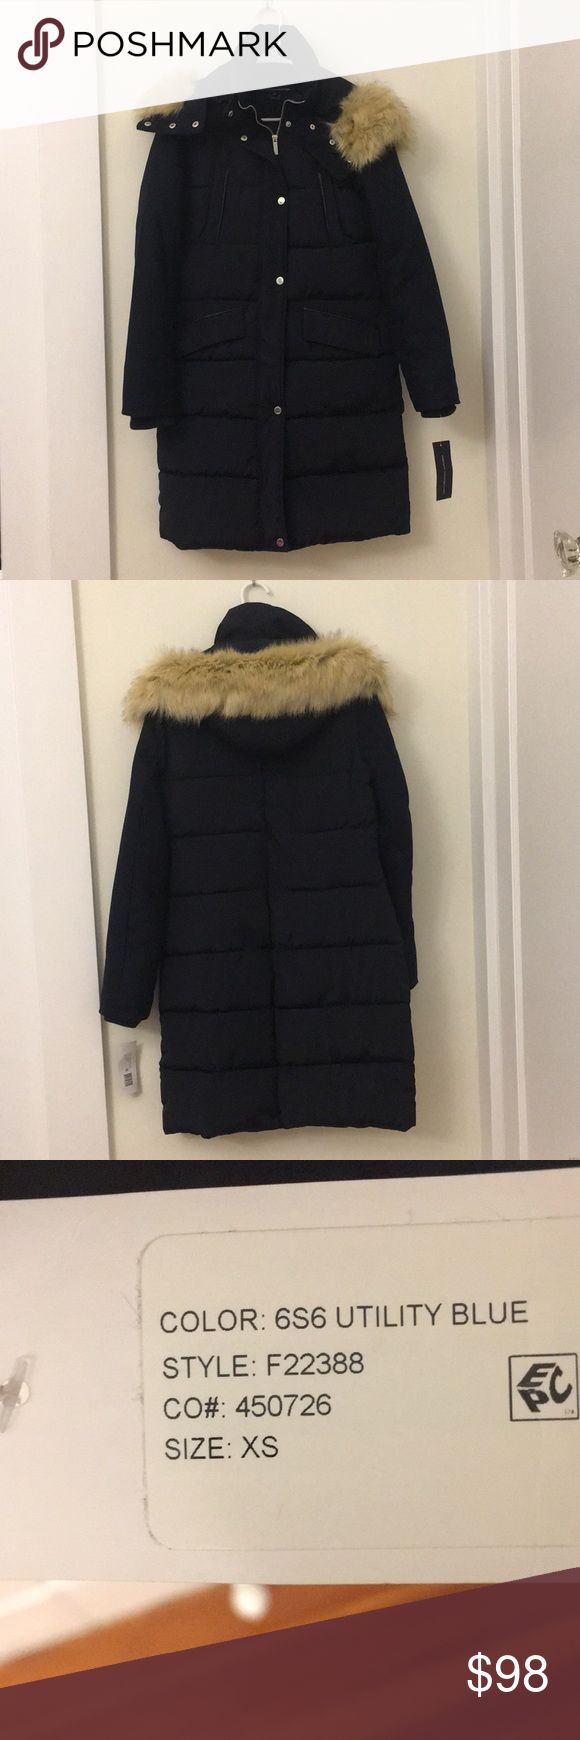 Nwt French connection puffer cost xs Brand new with tag - navy not black. Very warm. French Connection Jackets & Coats Puffers